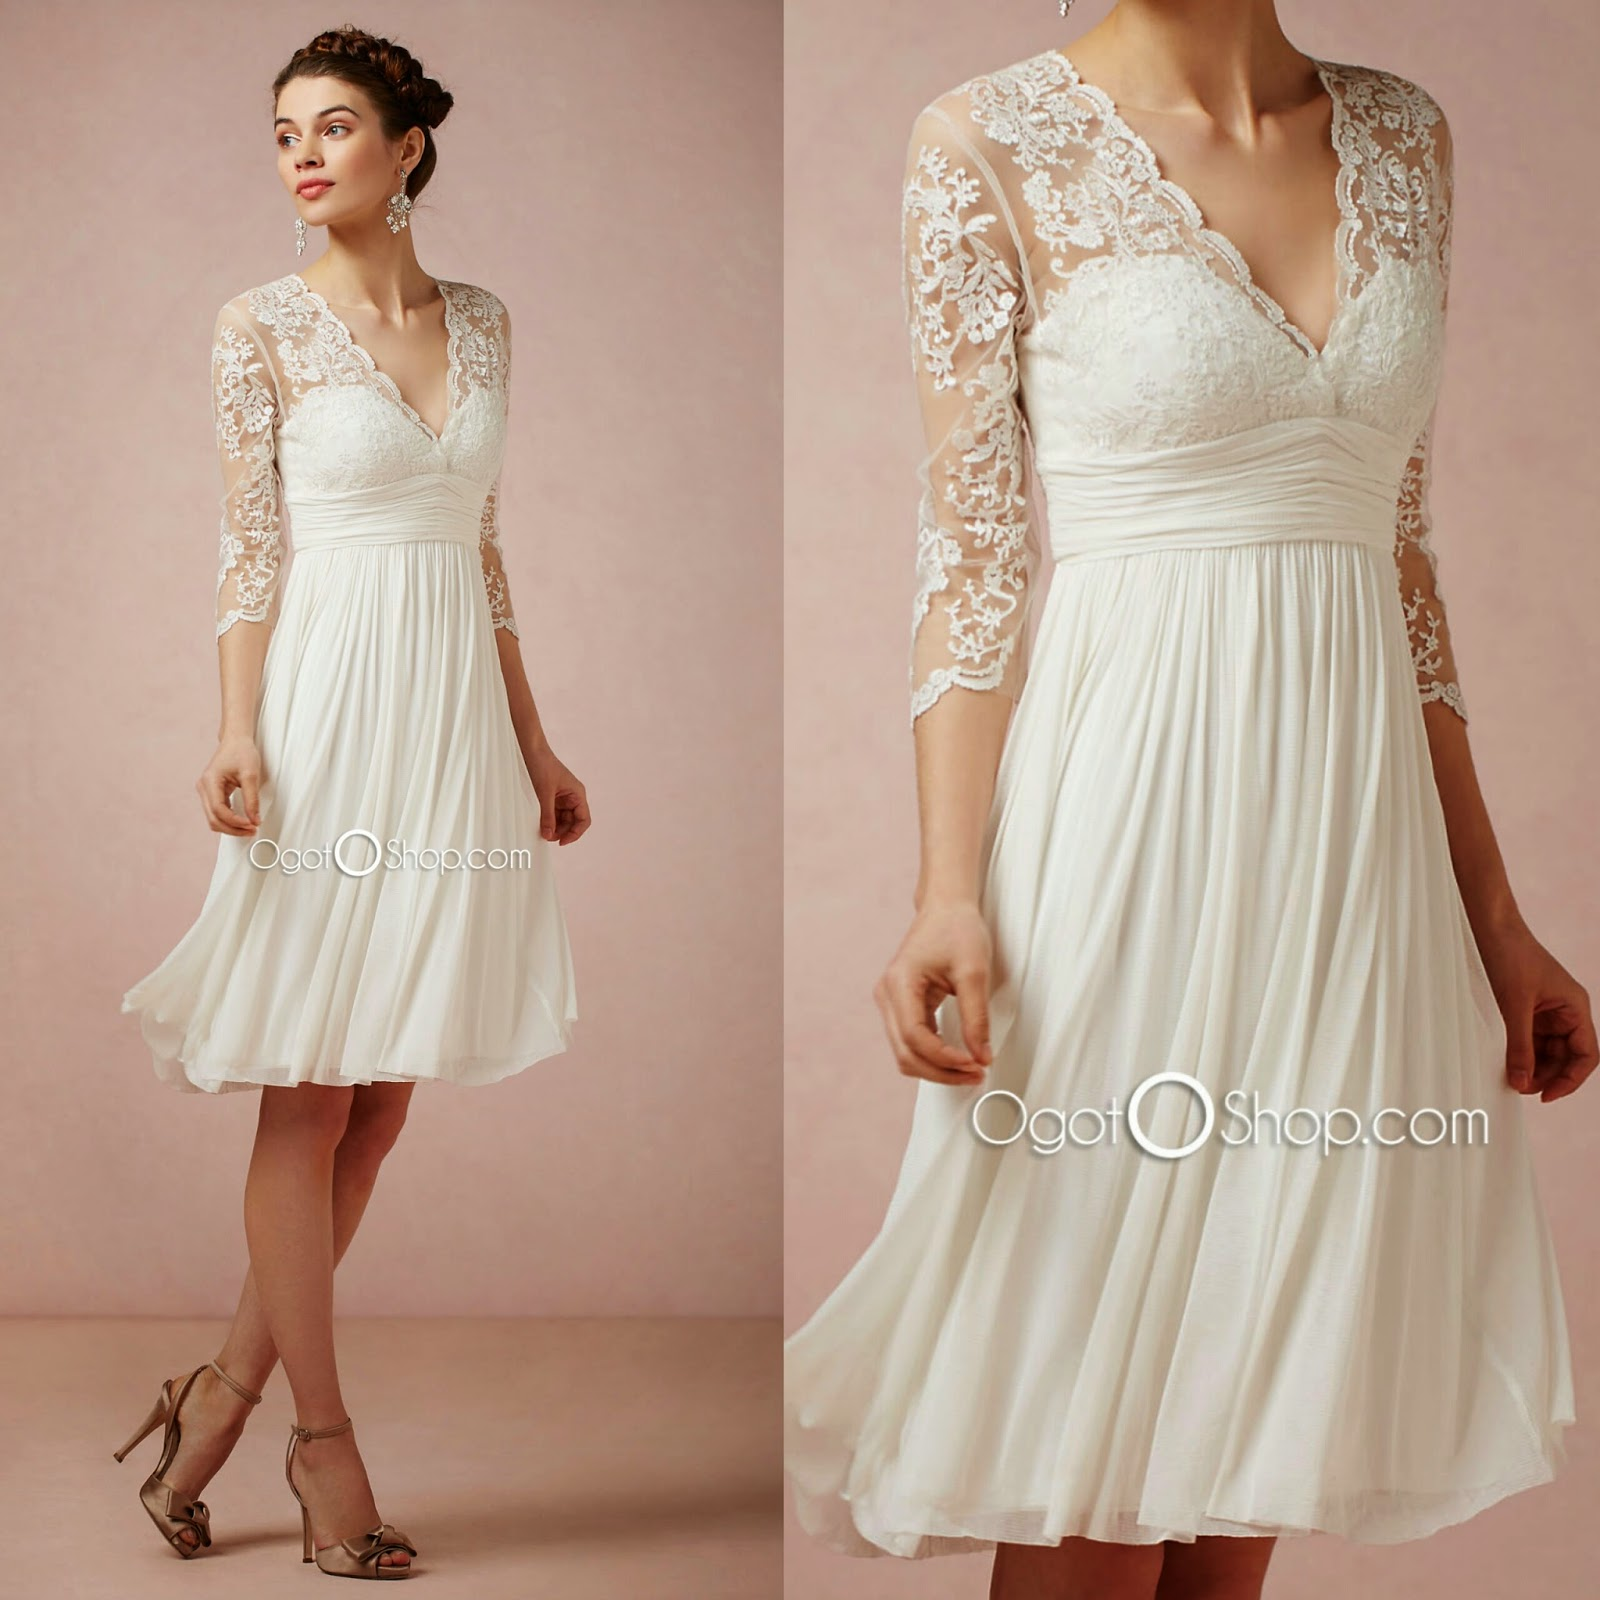 cheap dresses wedding cocktail graduation birthday affordable store shop fashion style